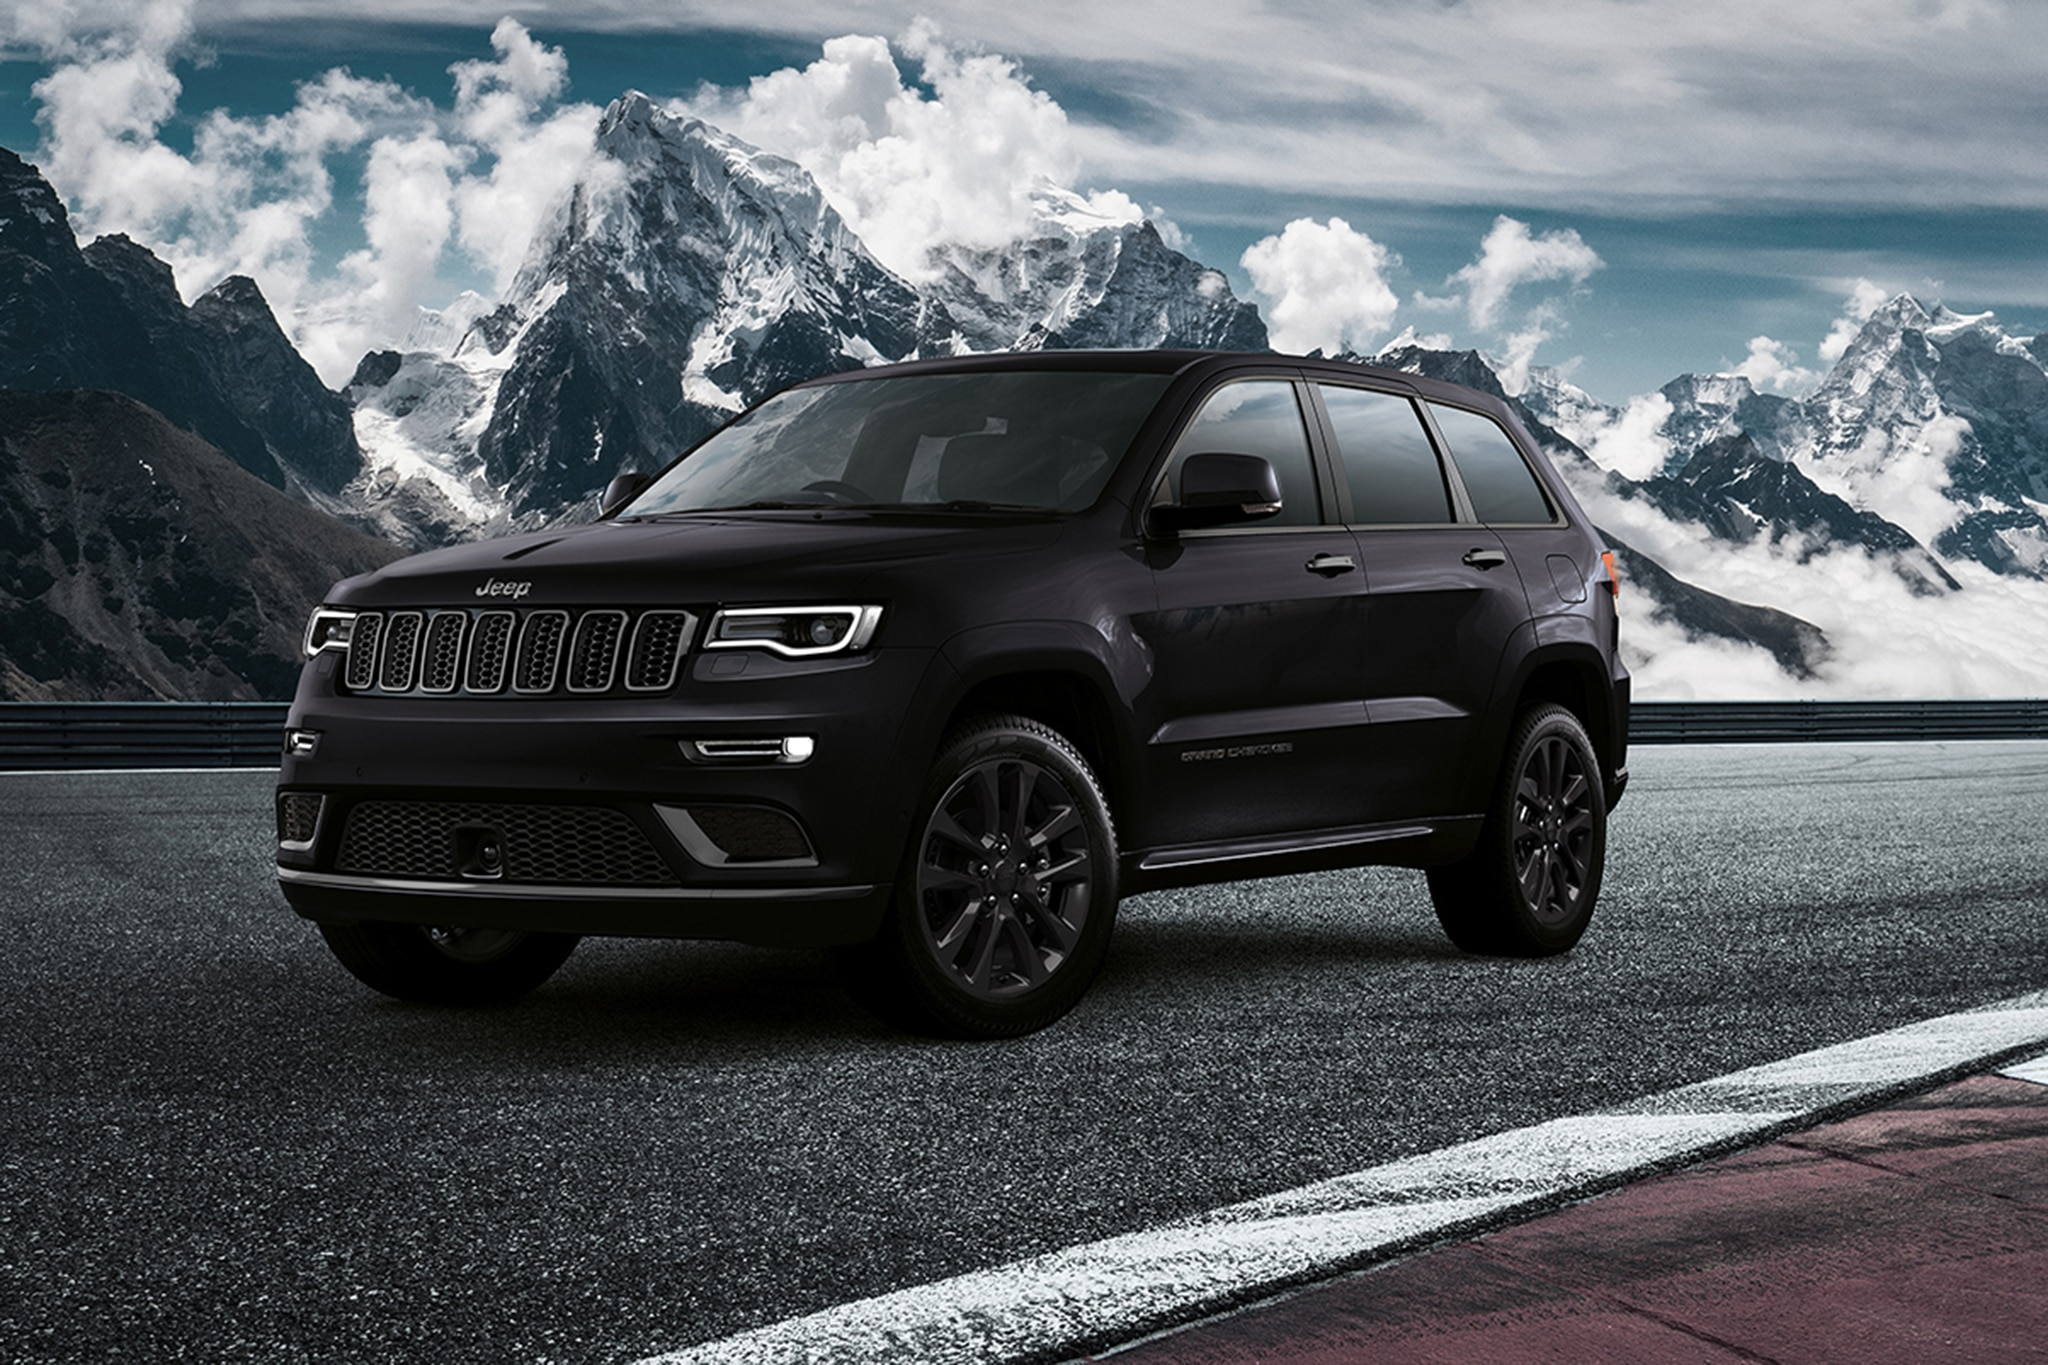 2018 jeep grand cherokee s goes dark in europe automobile magazine. Black Bedroom Furniture Sets. Home Design Ideas